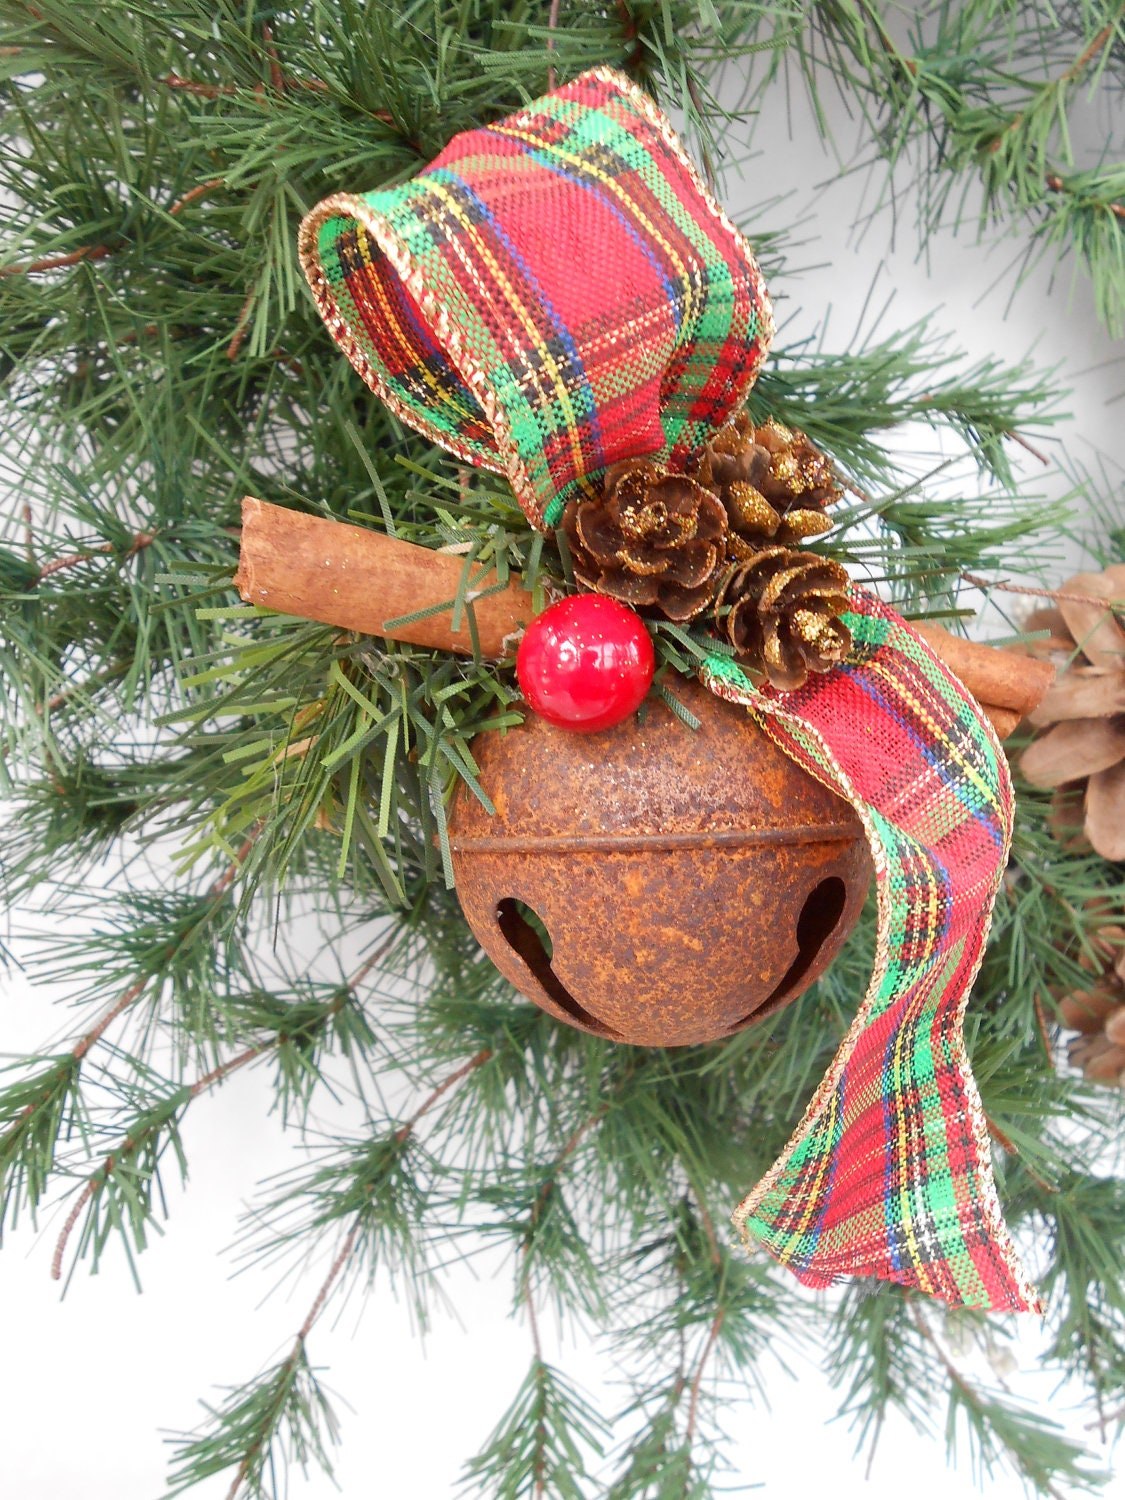 Country rustic jingle bell ornament w red plaid